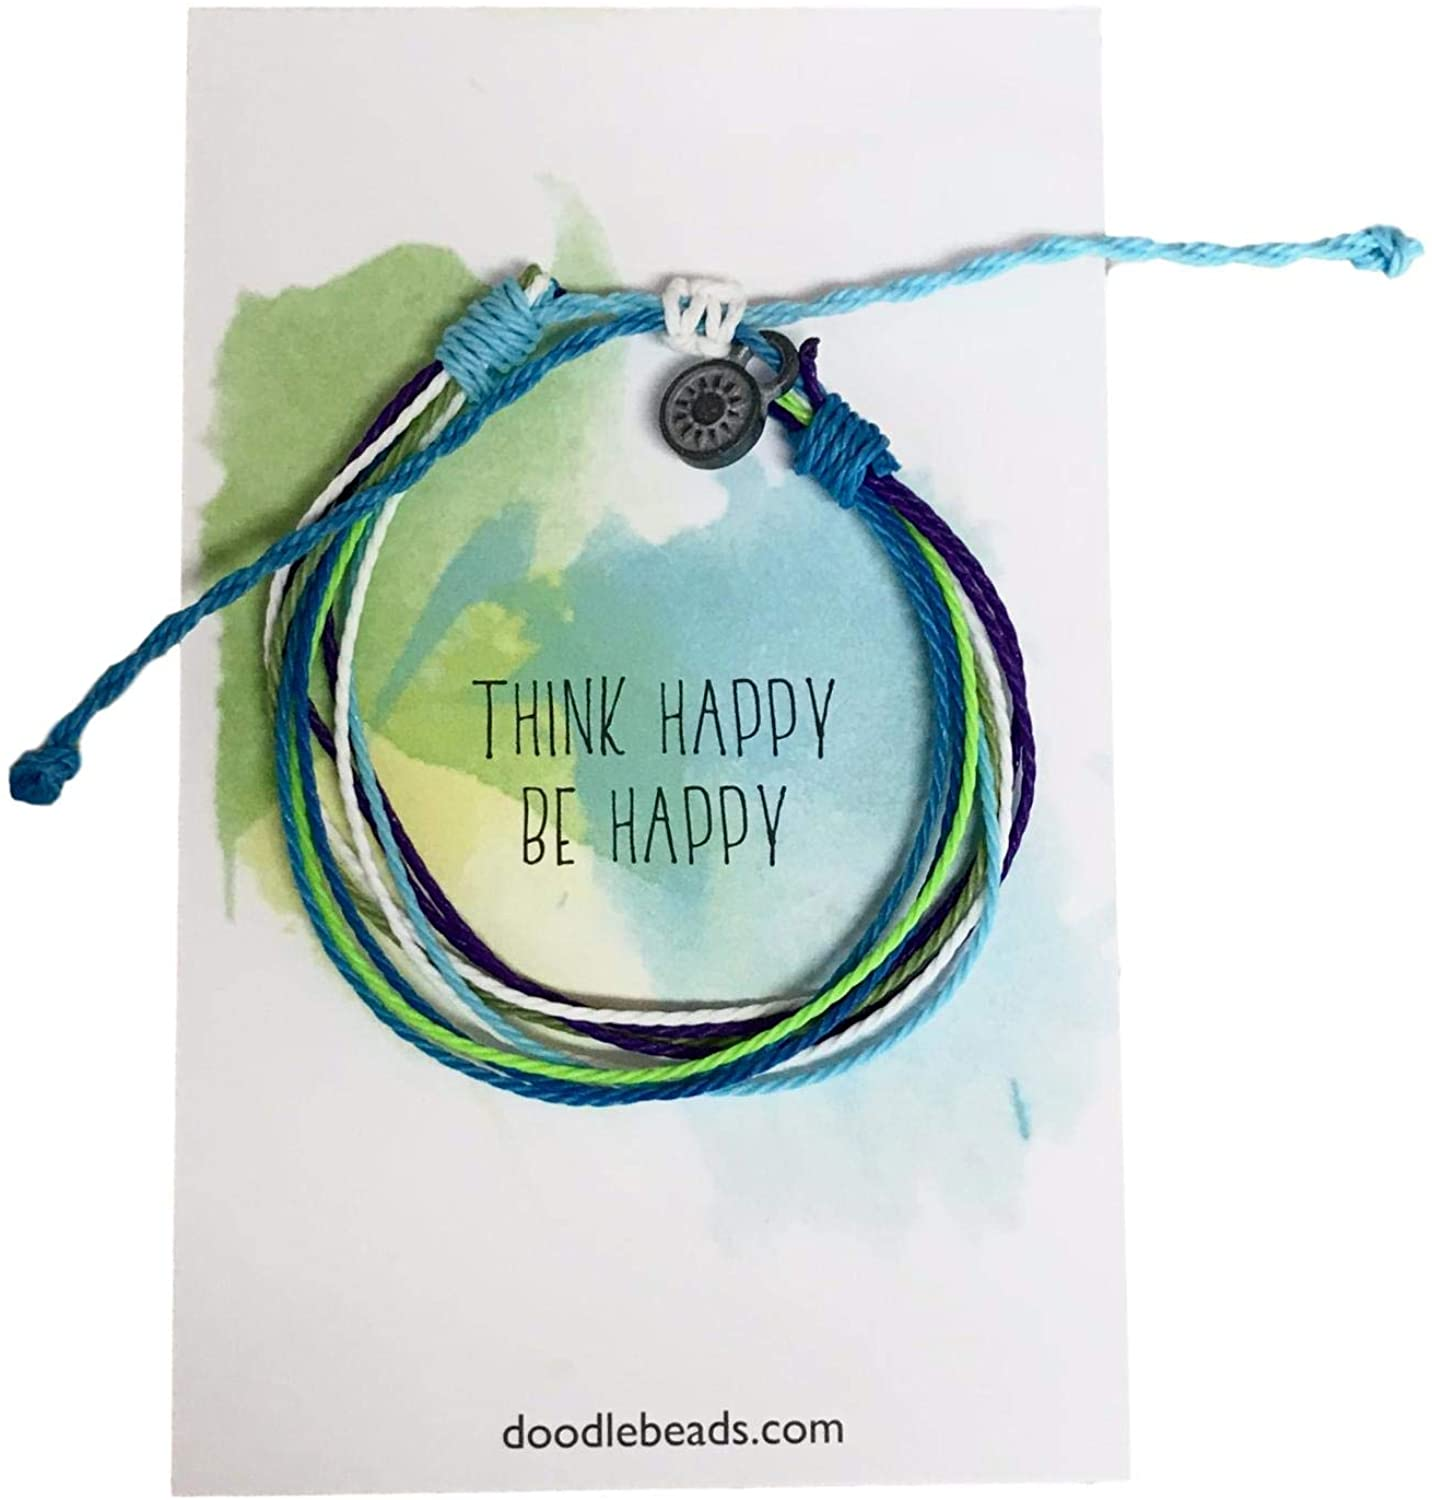 Doodle Beads Think Happy, Be Happy Friendship Threaded Bracelet Wax Coated and Waterproof